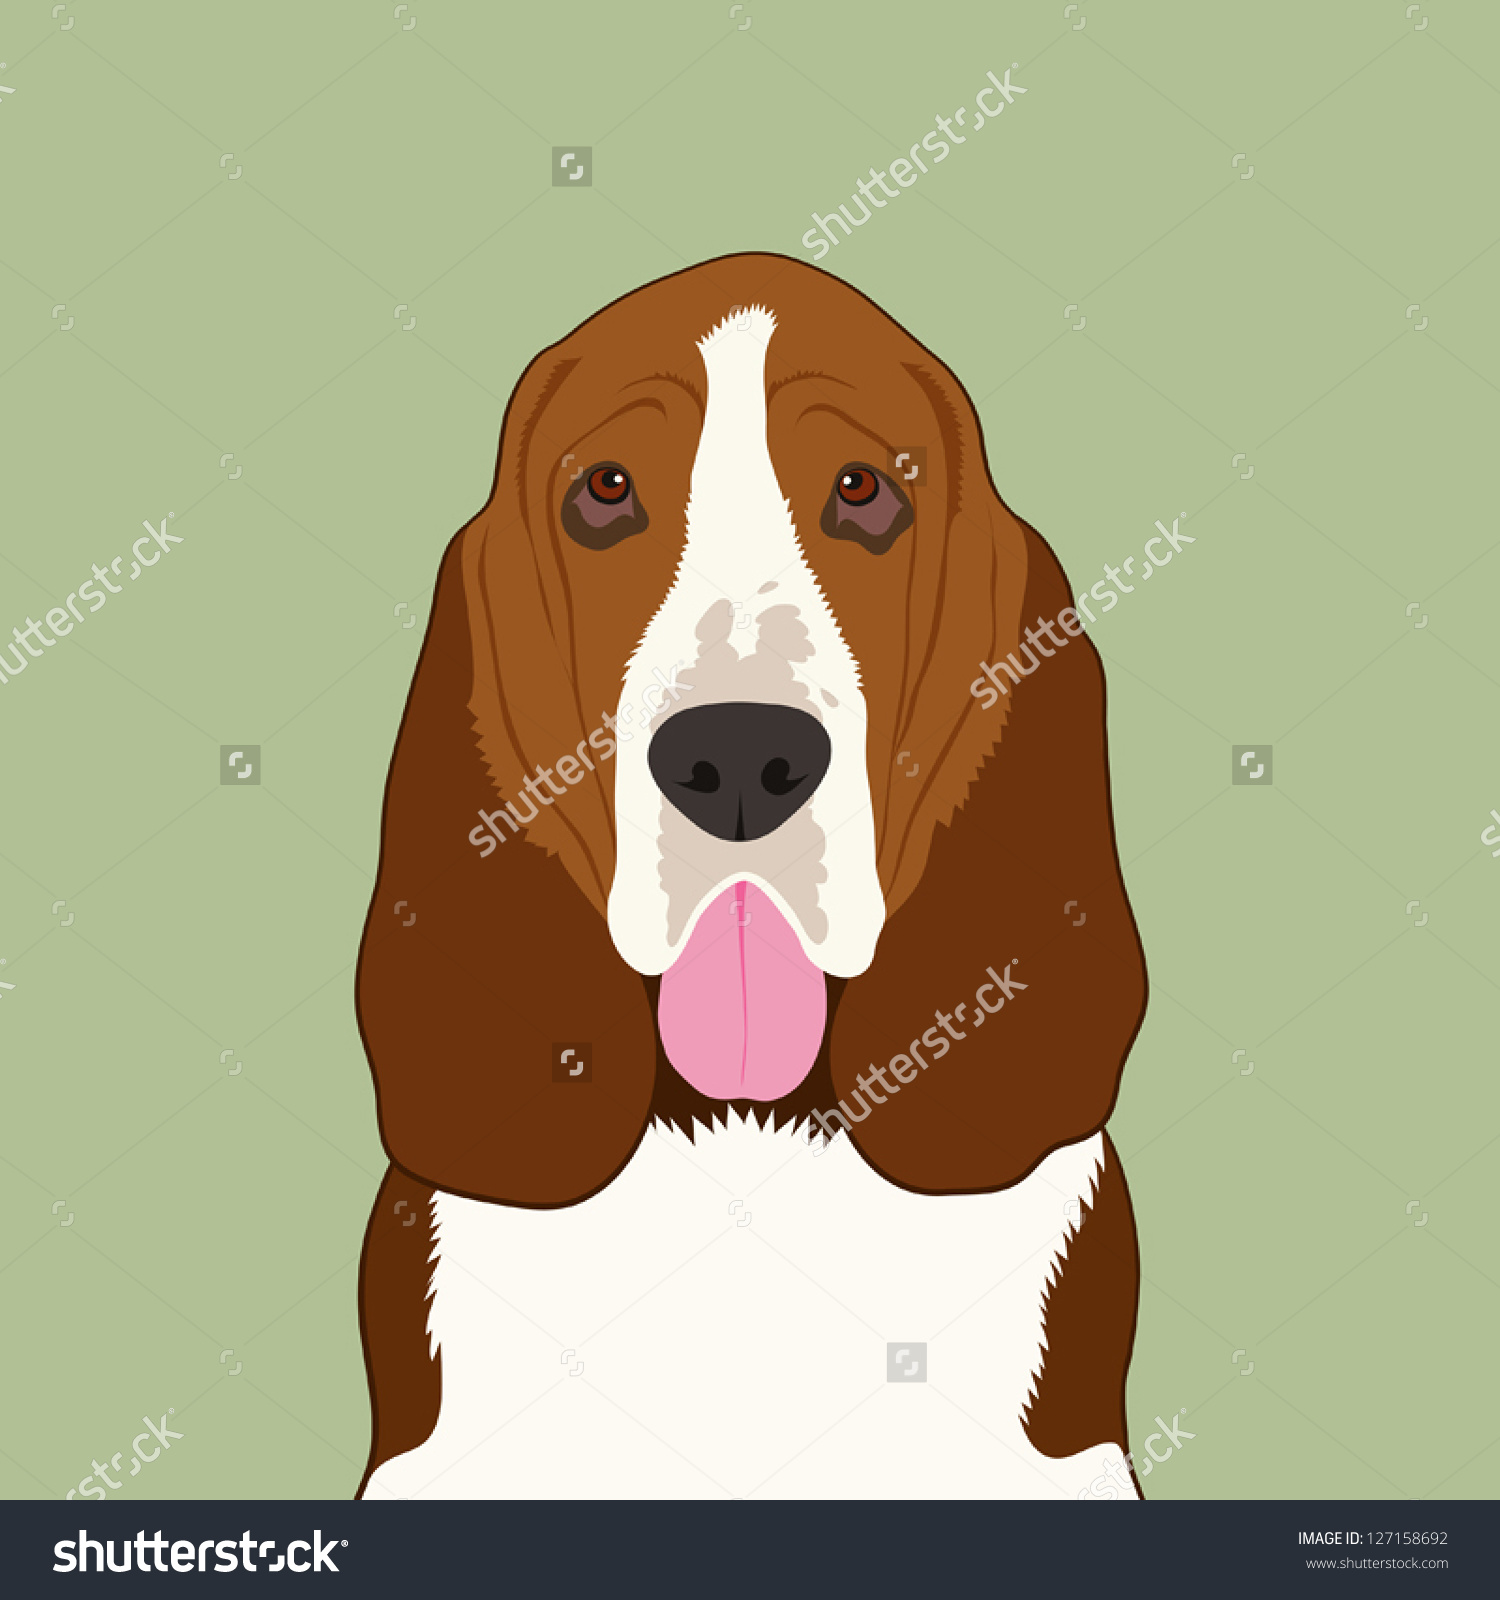 Buddy the dog clipart jpg freeuse library Buddy the dog clipart - ClipartFest jpg freeuse library